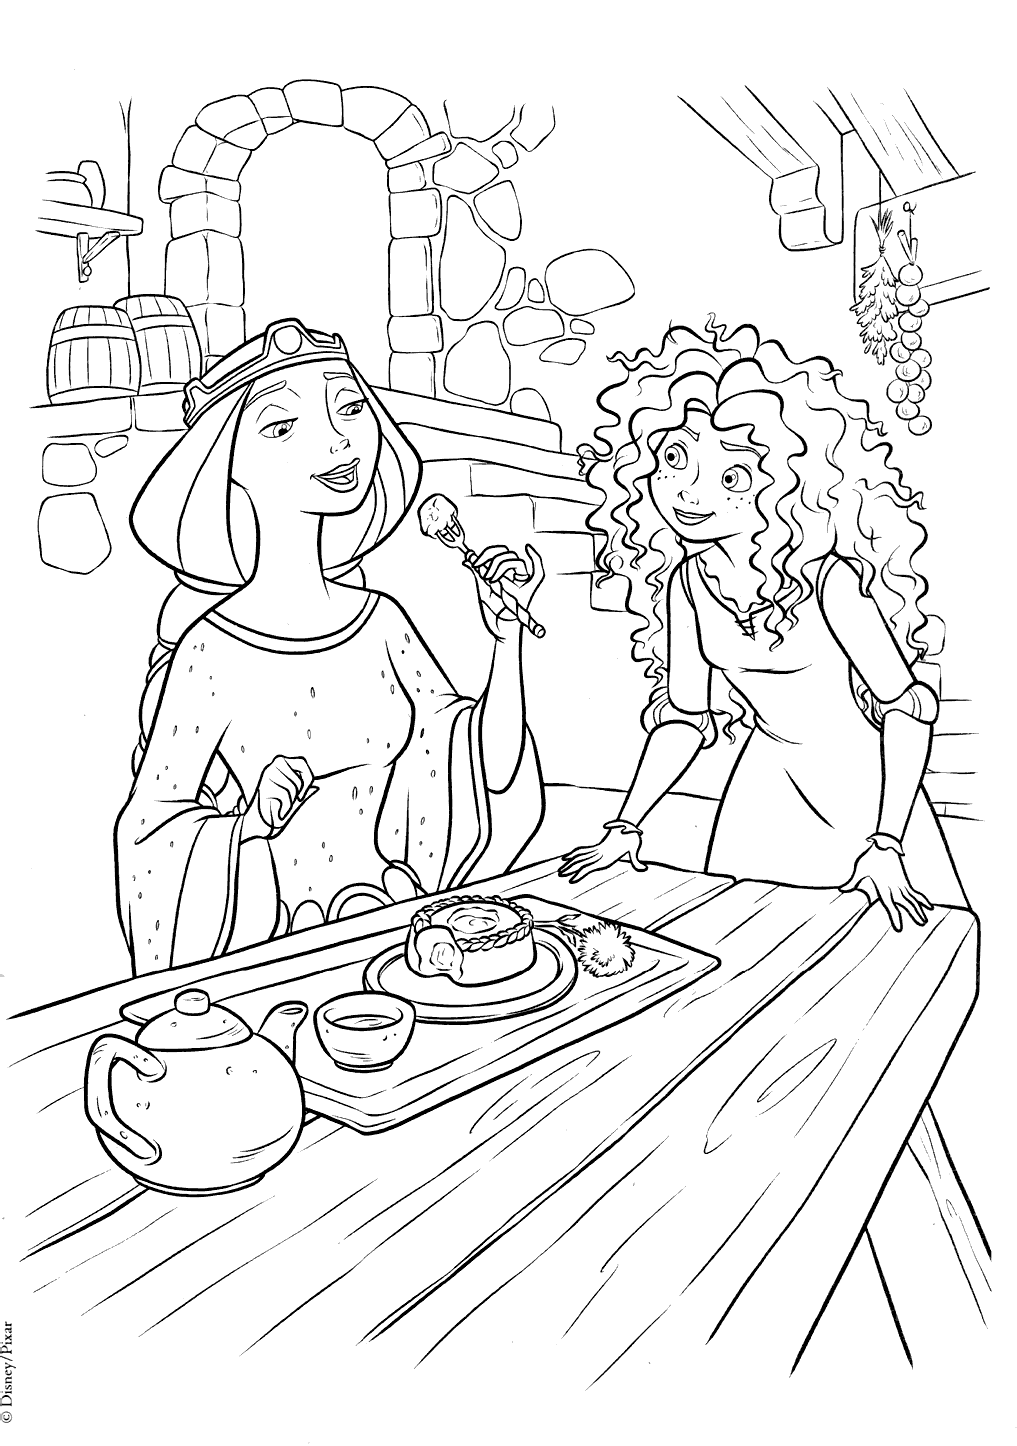 Brave coloring picture | 1446x1017